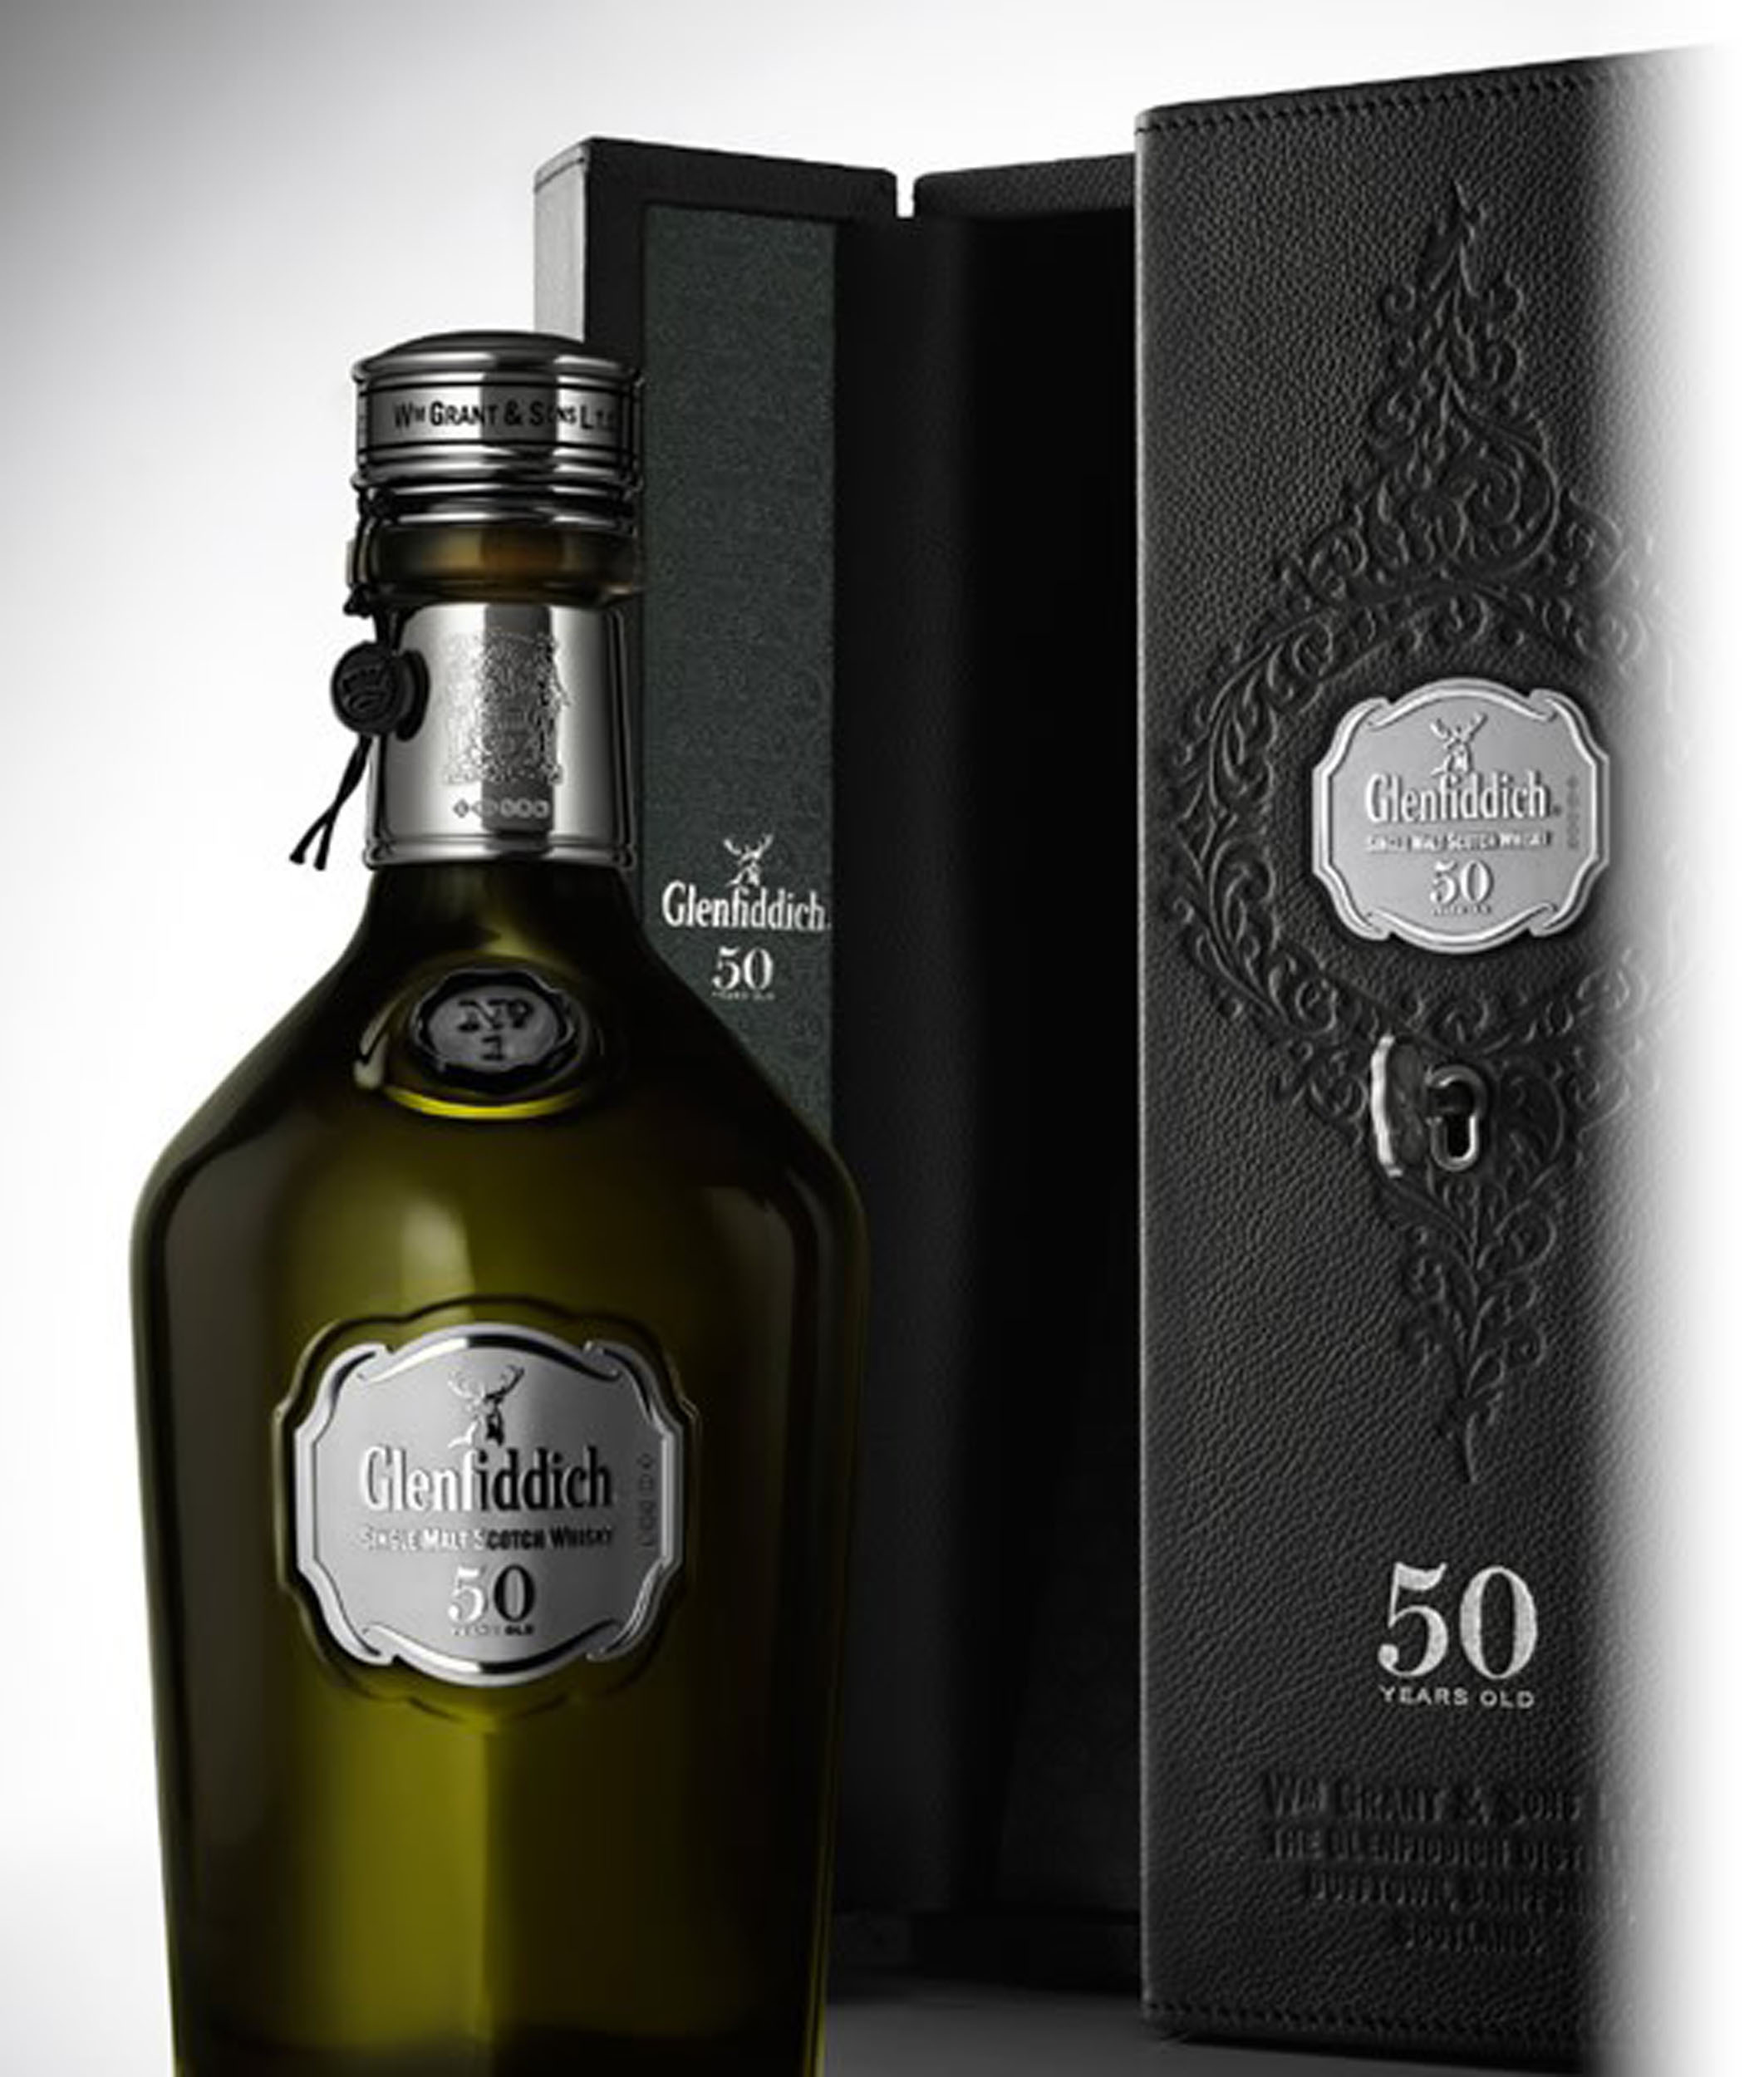 glenfiddich-50yr-old-product-detail-feature.jpg